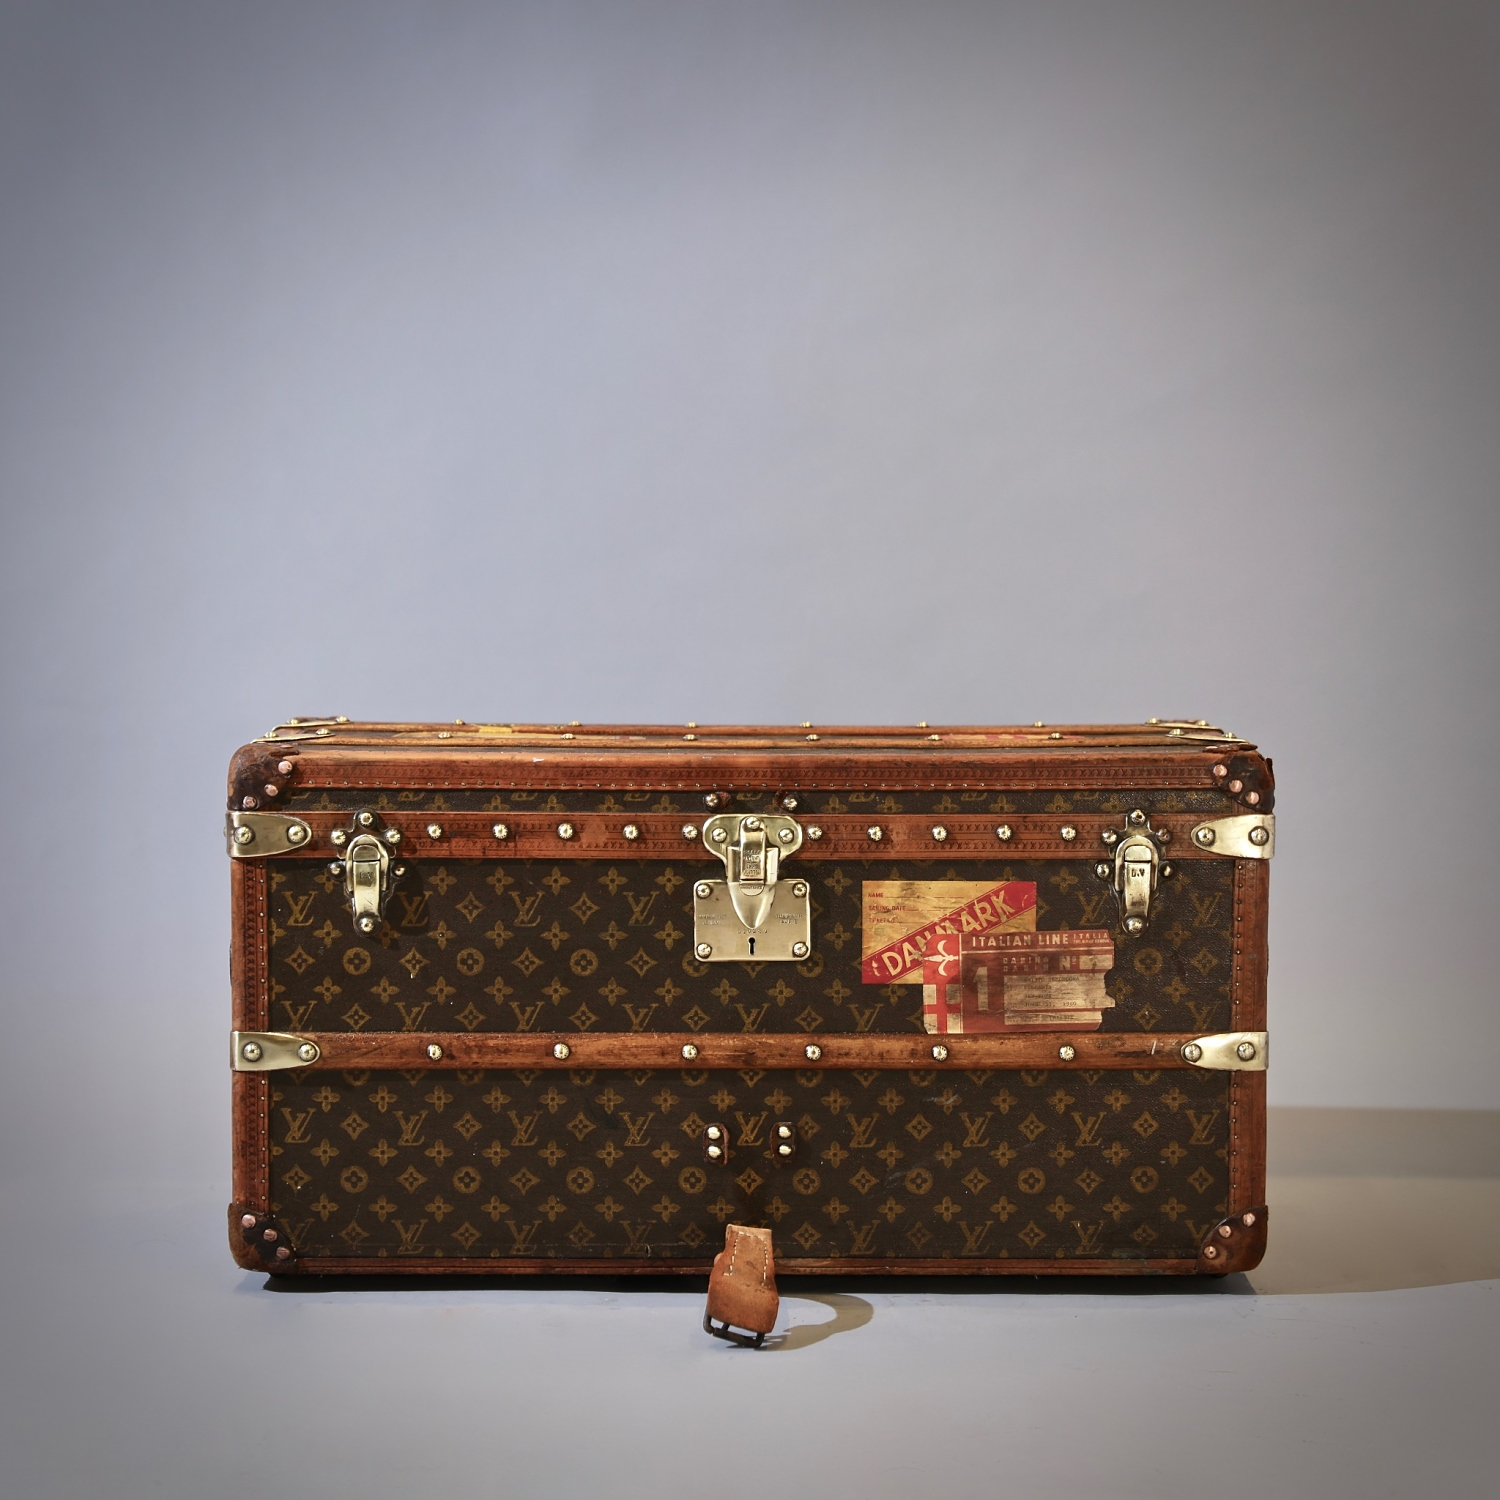 the-well-traveled-trunk-louis-vuitton-thumbnail-product-5699